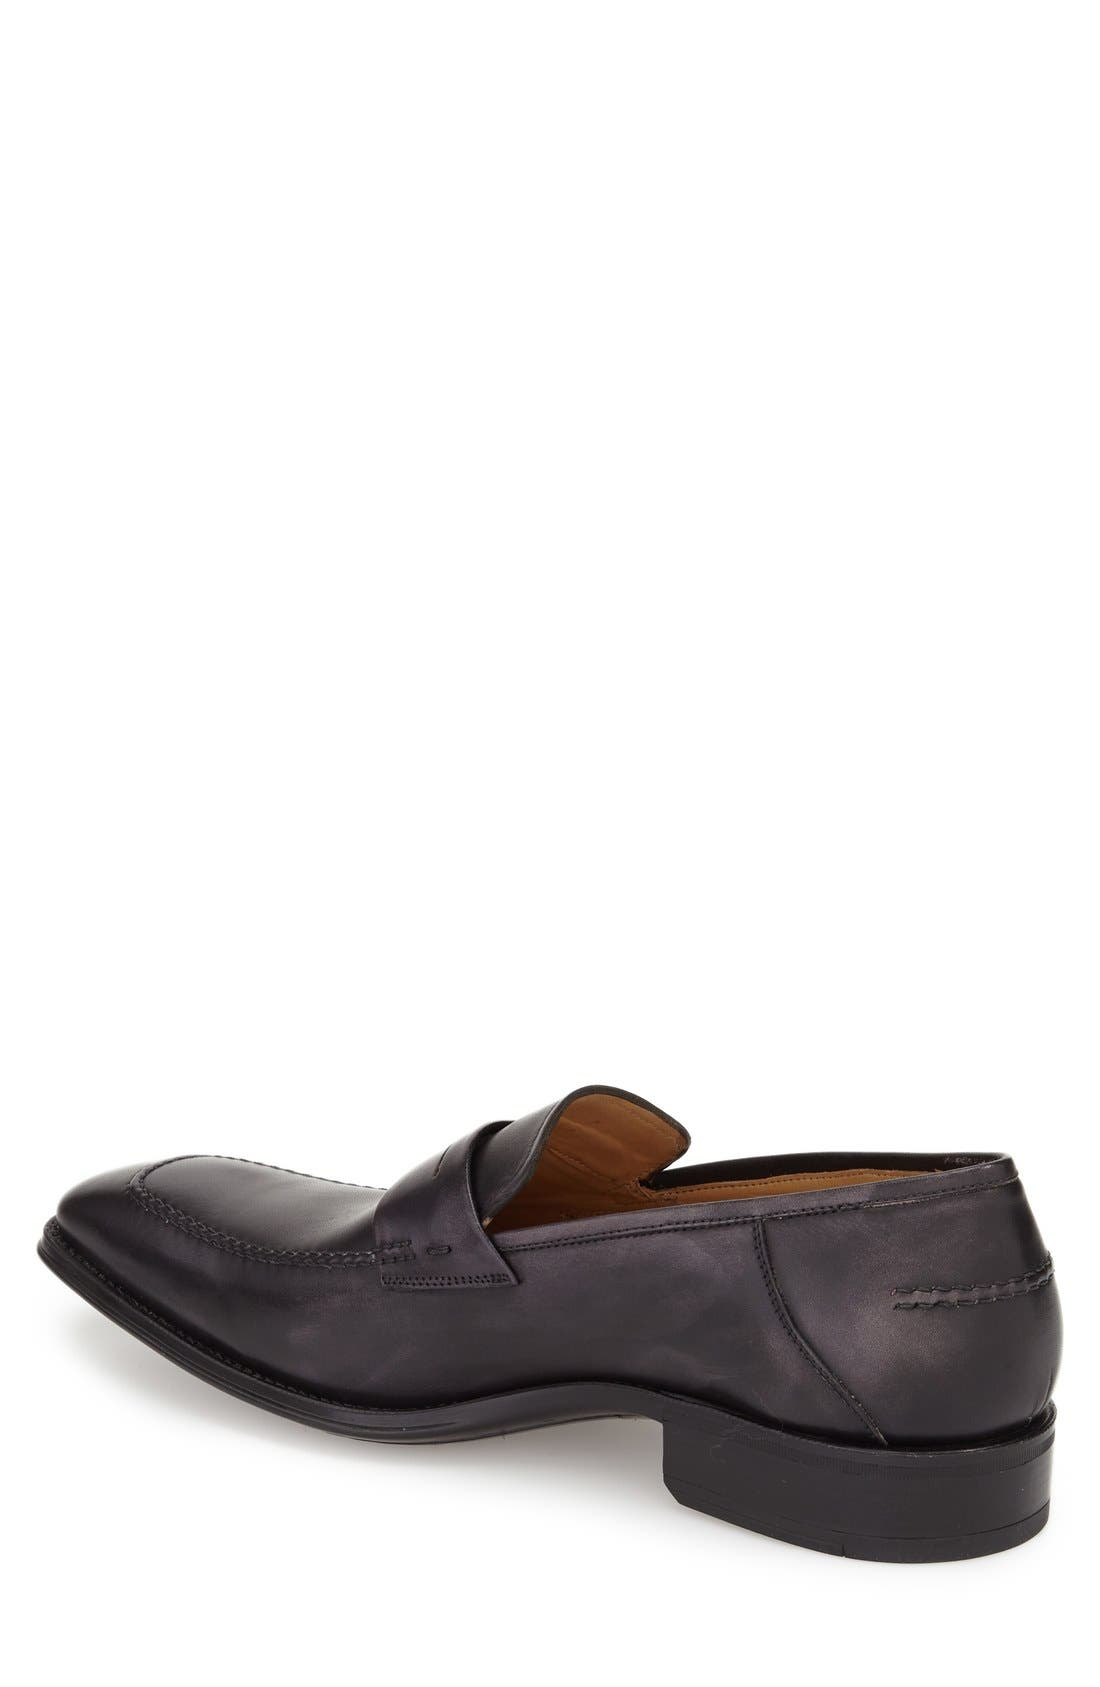 'Trento' Penny Loafer,                             Alternate thumbnail 2, color,                             Black